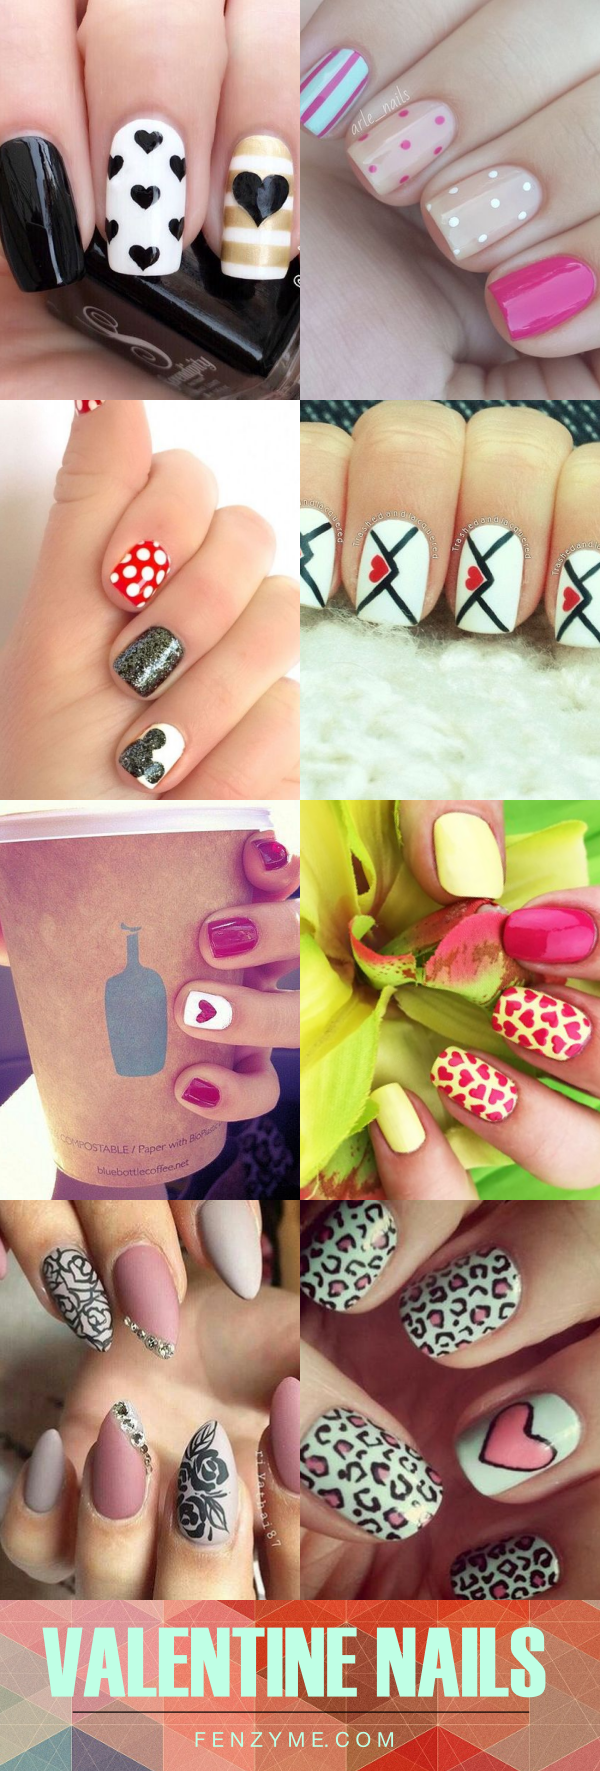 Cute Valentine Nail Art Designs1.1